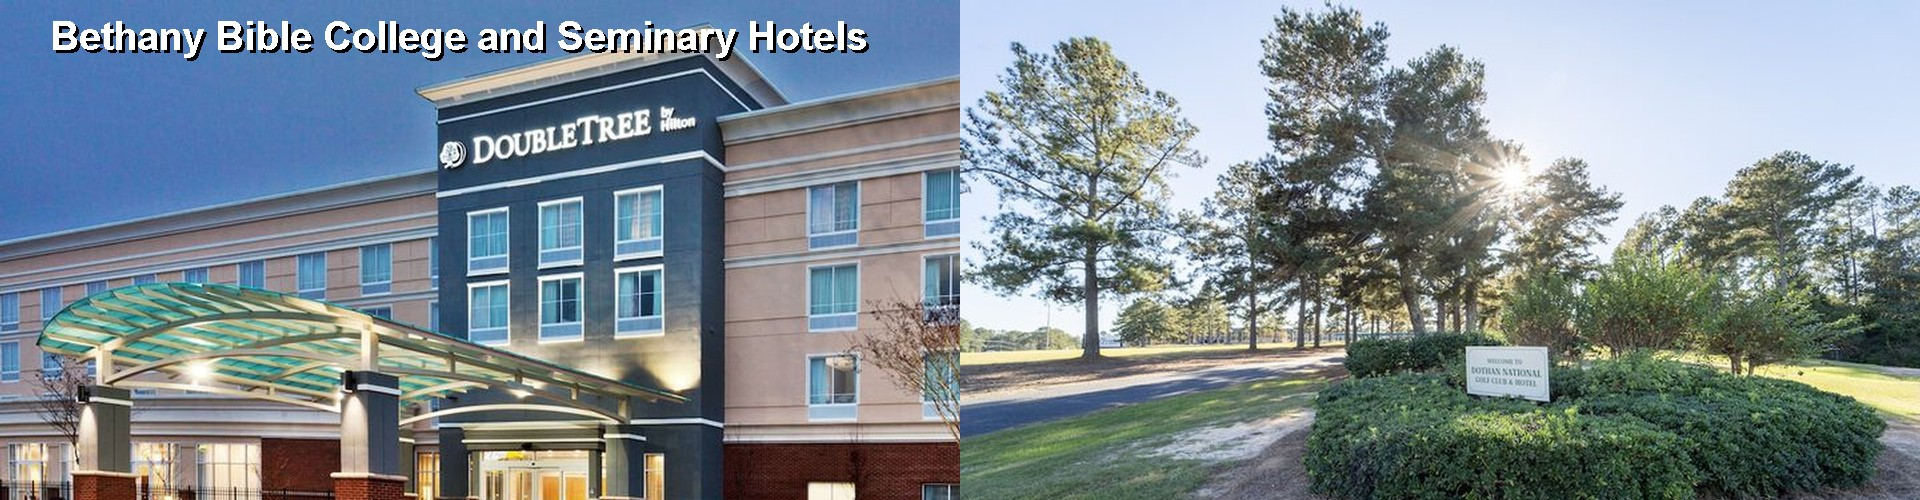 5 Best Hotels near Bethany Bible College and Seminary